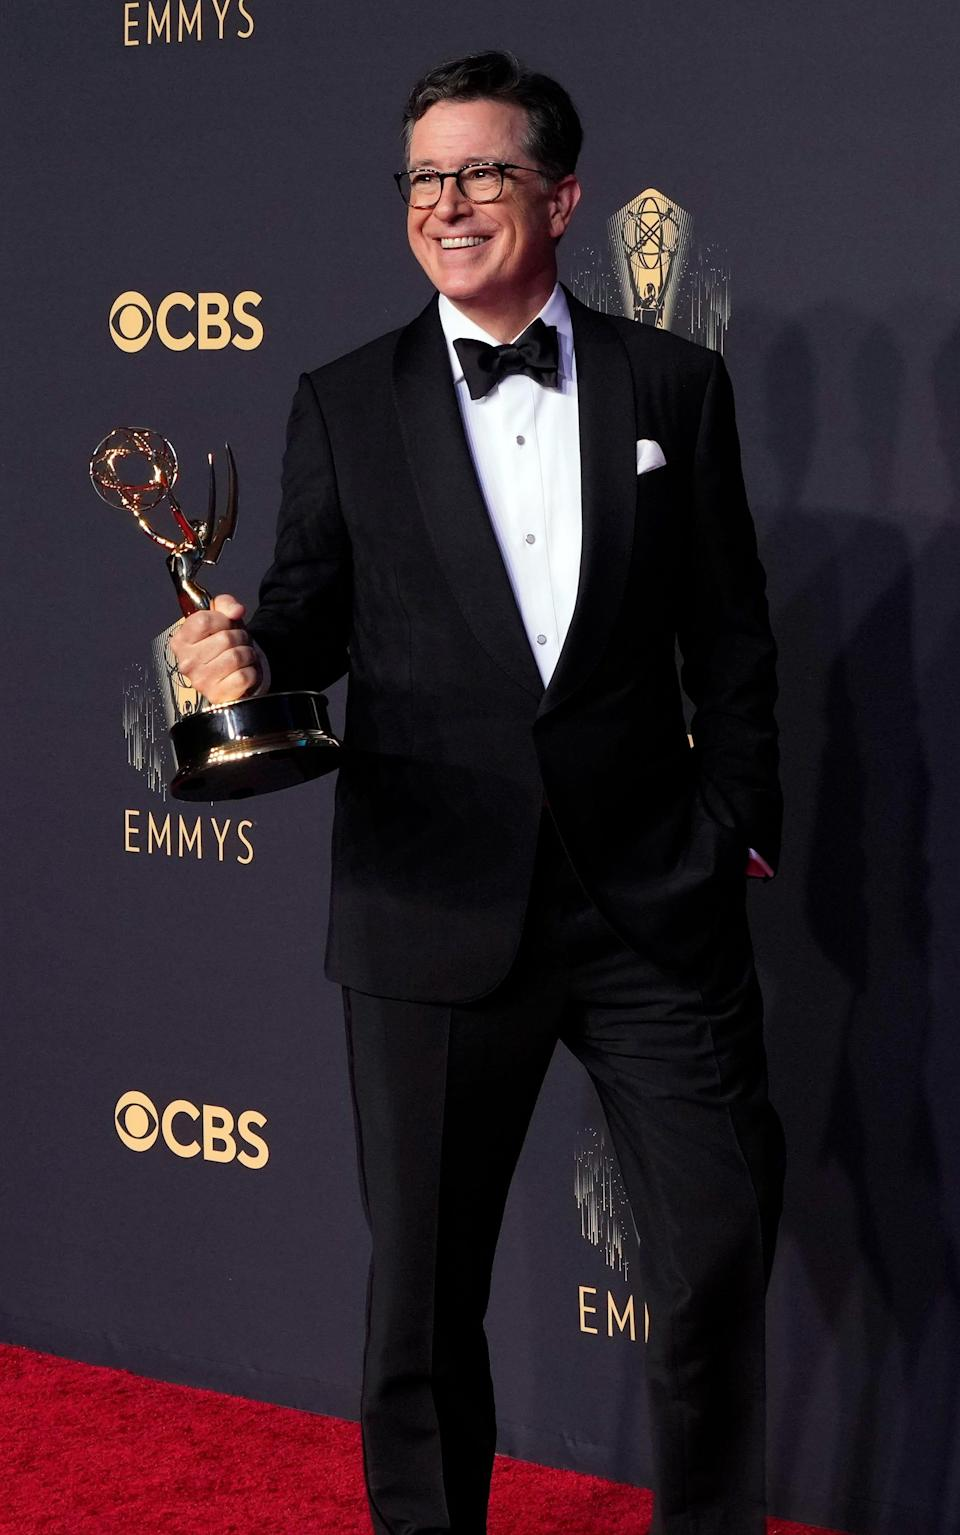 Stephen Colbert, winner of Outstanding Variety Special (Live) for 'Stephen Colbert's Election Night 2020', in the press room at the 73rd Emmy Awards at L.A. Live..